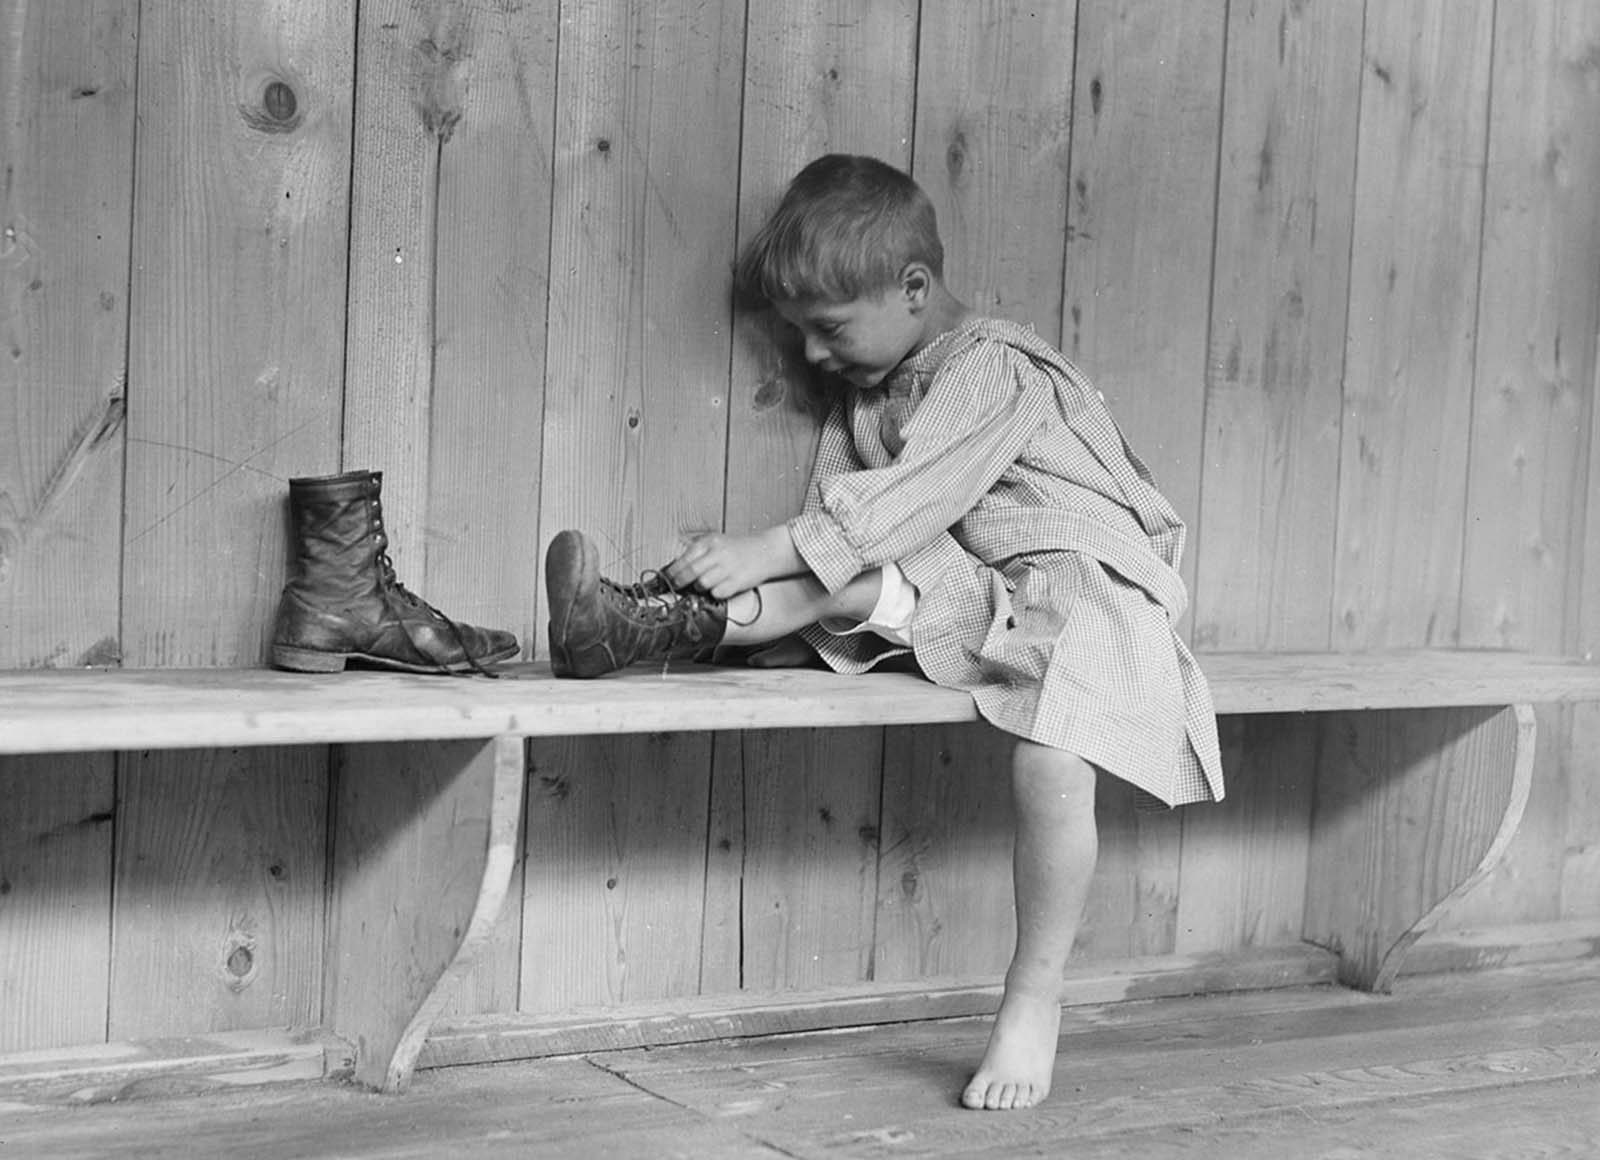 A boy puts on his new shoes at Trudeau Sanitarium, Hachette, near Paris in September of 1918.